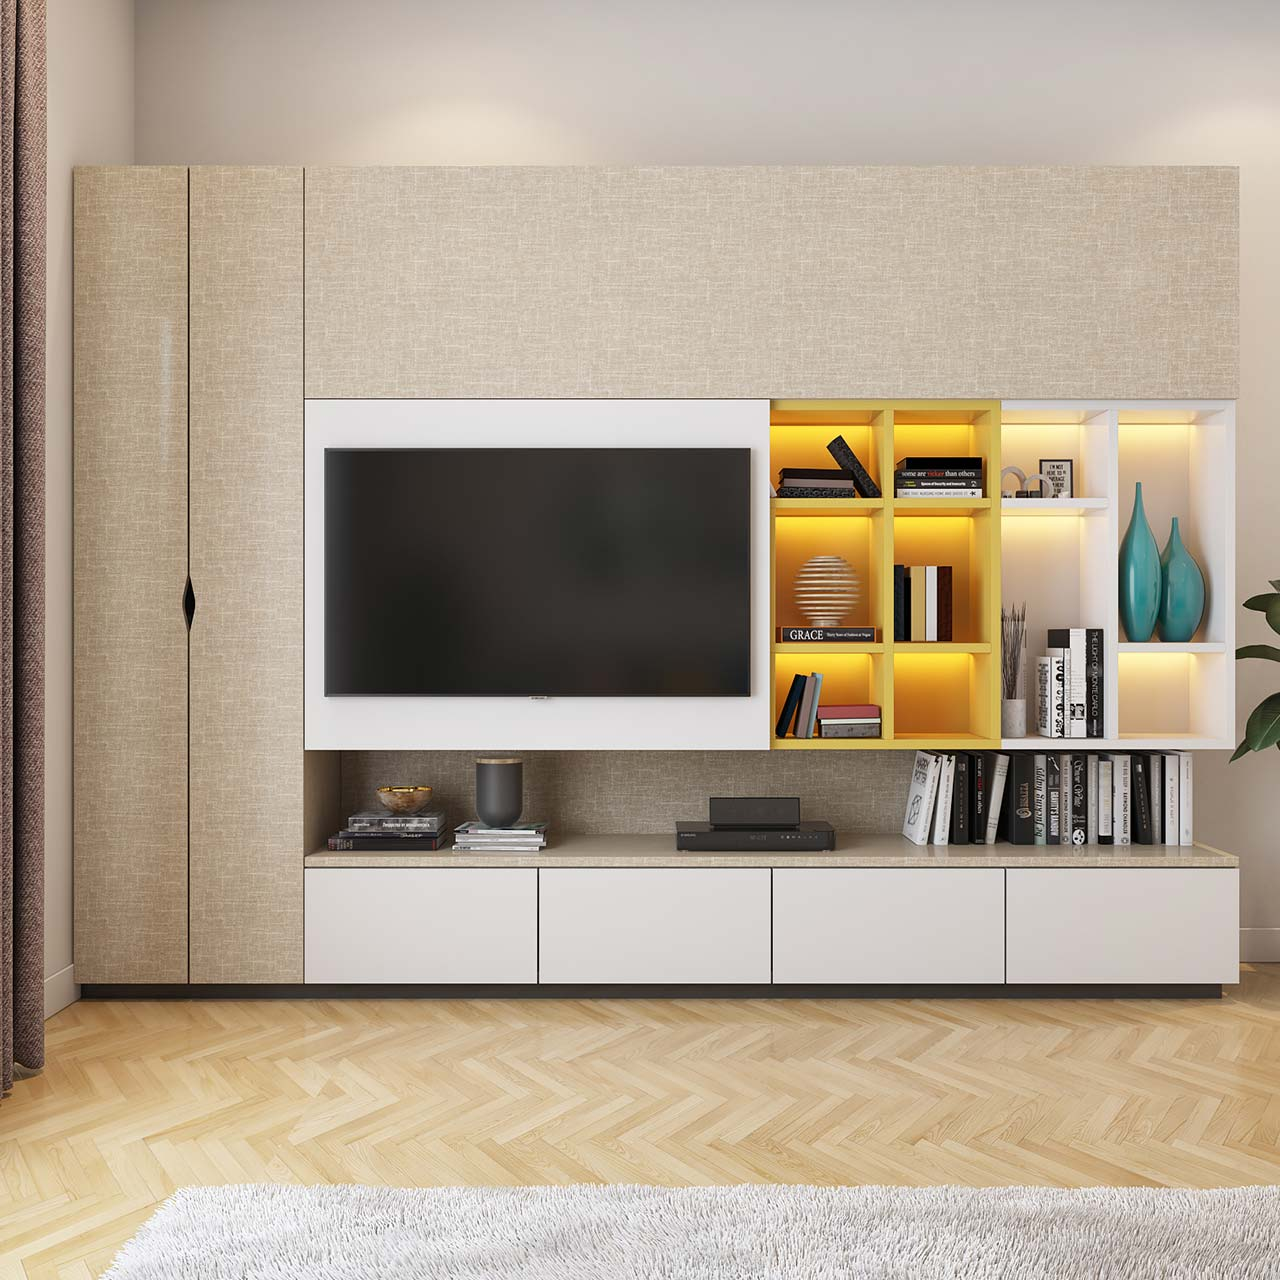 Tv Sideboard Modern Modern Tv Unit Design Ideas For Your Home | Design Cafe